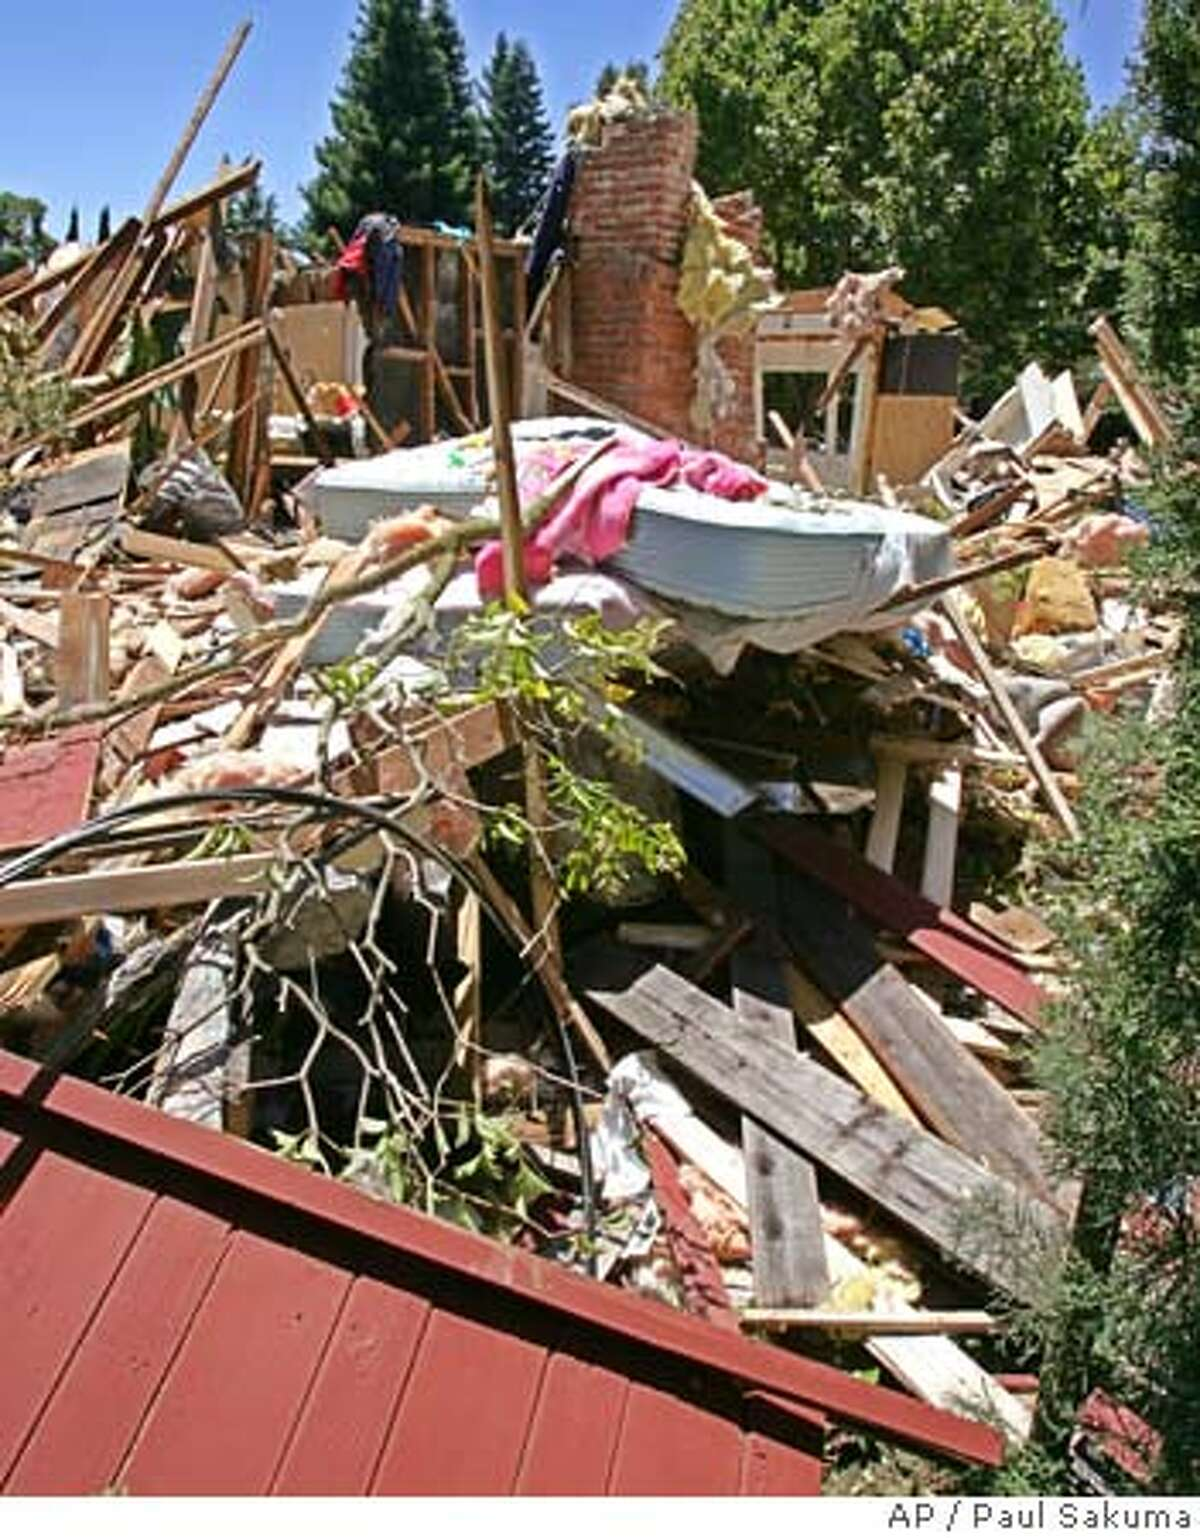 A child's bed is shown in the middle of the rubble of the home of David Hu in Los Altos, Calif., Thursday, July 7, 2005 after a , authorities said. Two children, ages 4 and 6, were treated for minor injures after the blast at the two-story home that destoyed most of the house. (AP Photo/Paul Sakuma)